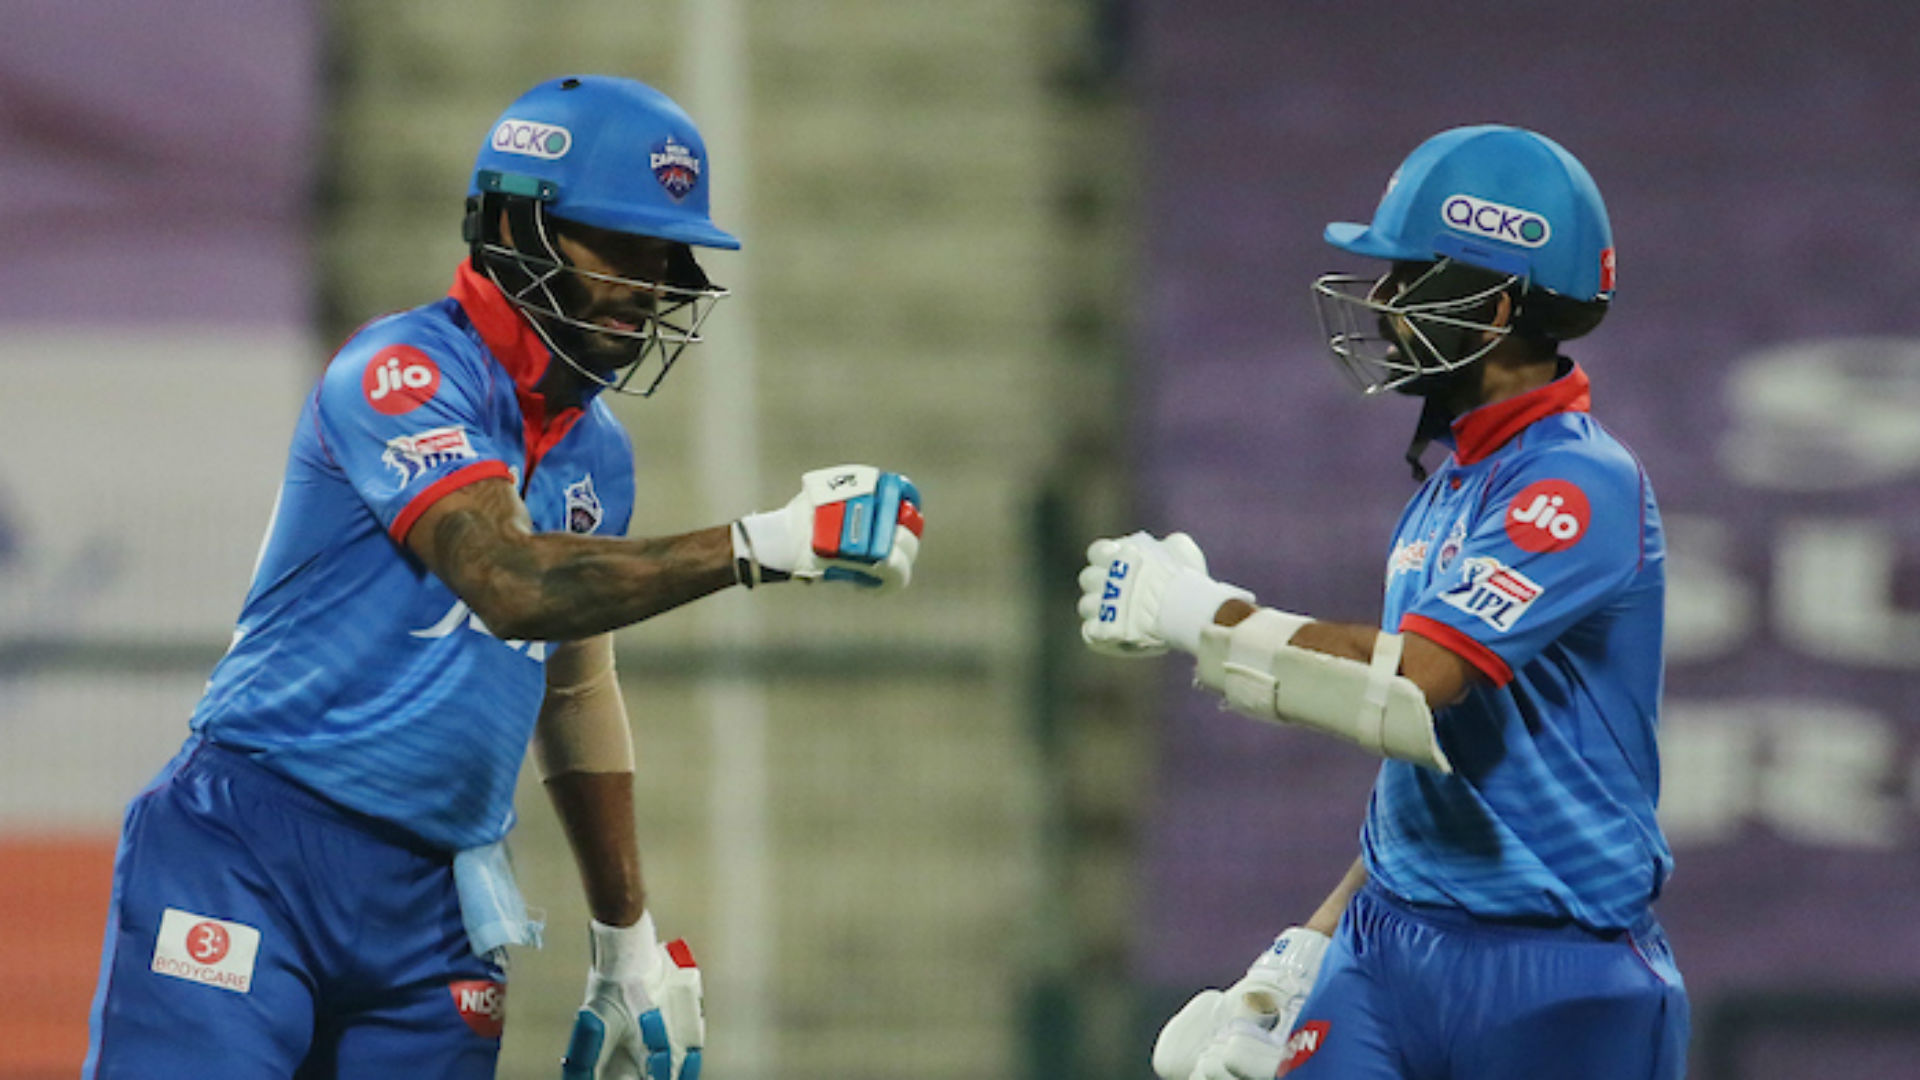 Capitals seal second place, RCB qualify despite defeat